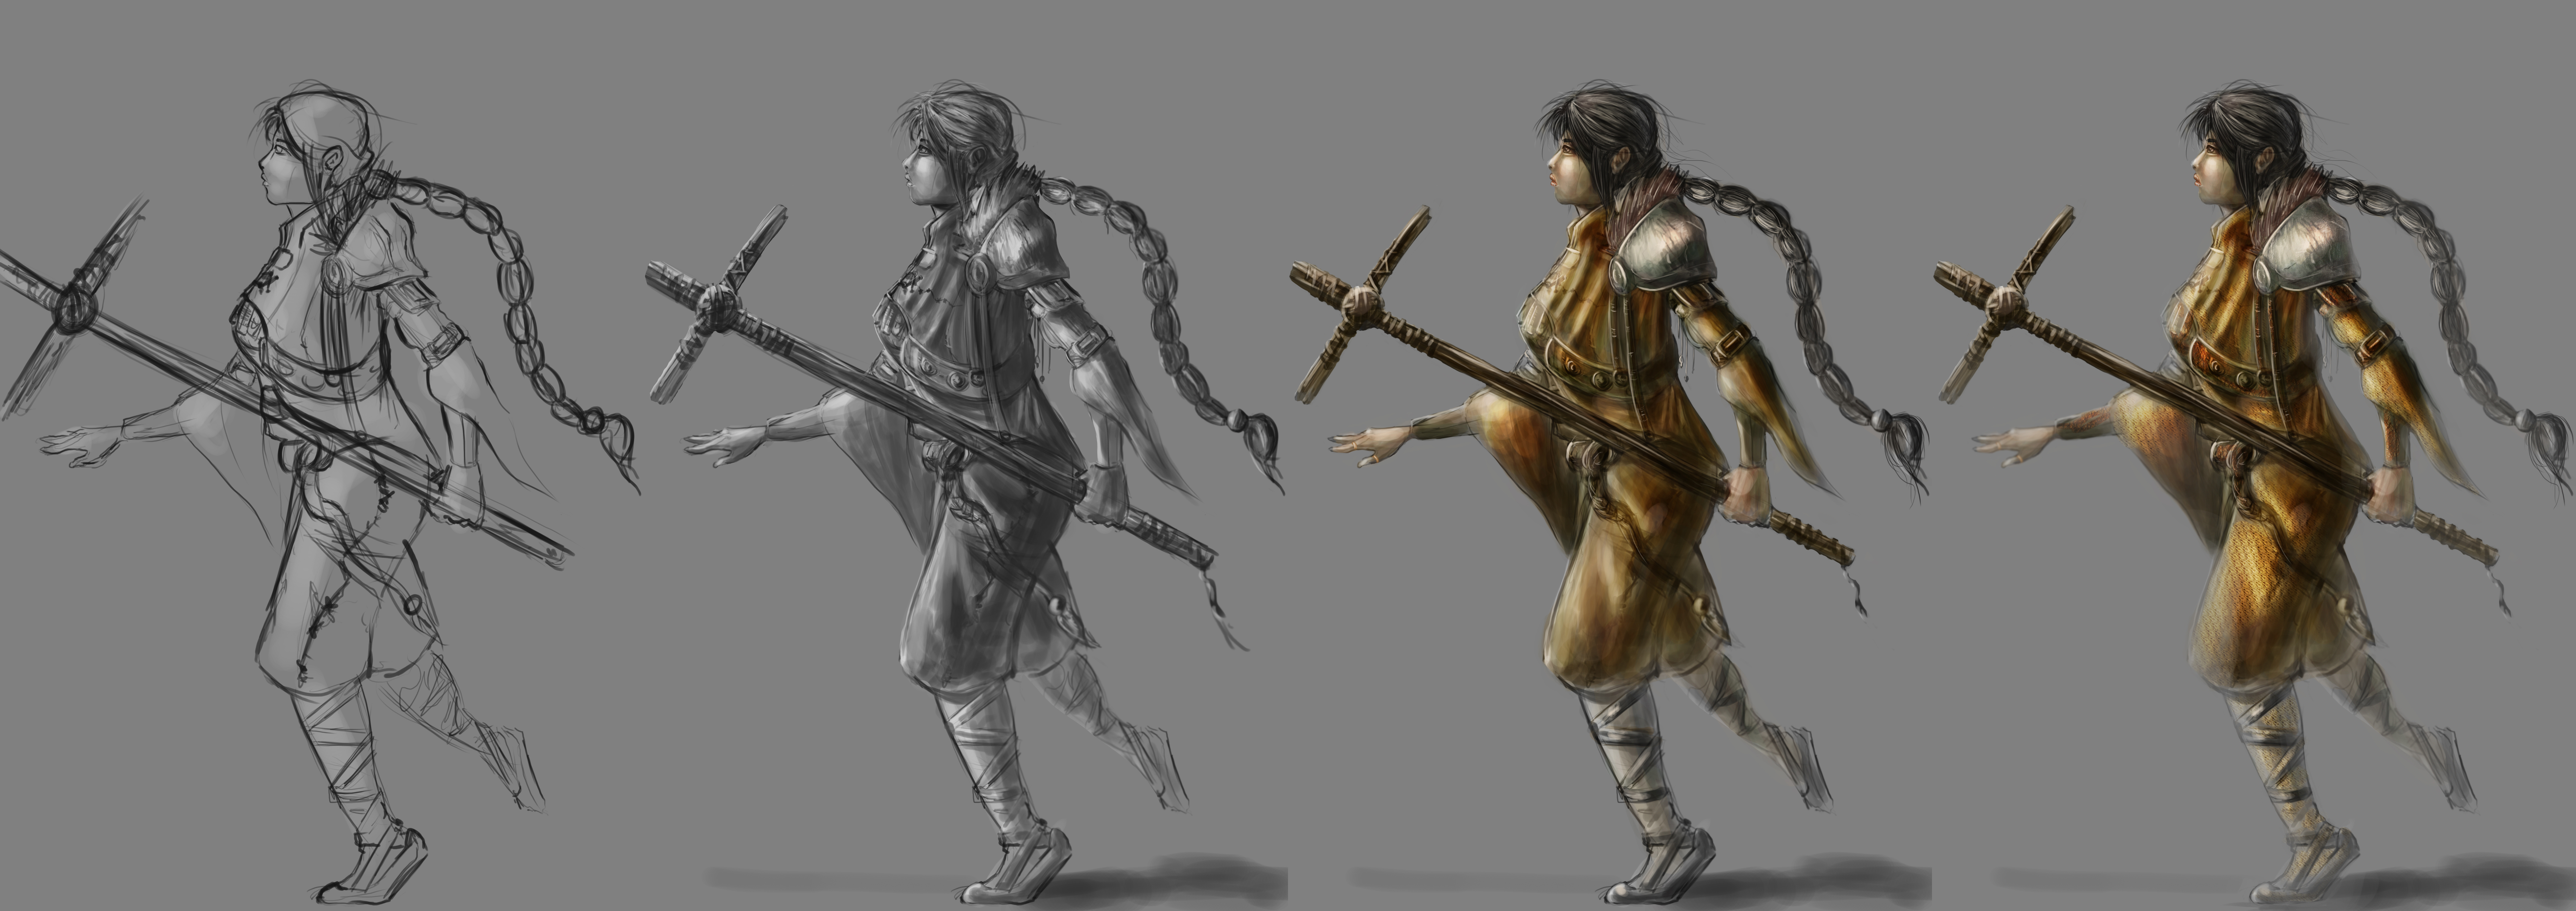 Character Concept Design Process : Process of character concept art creation by